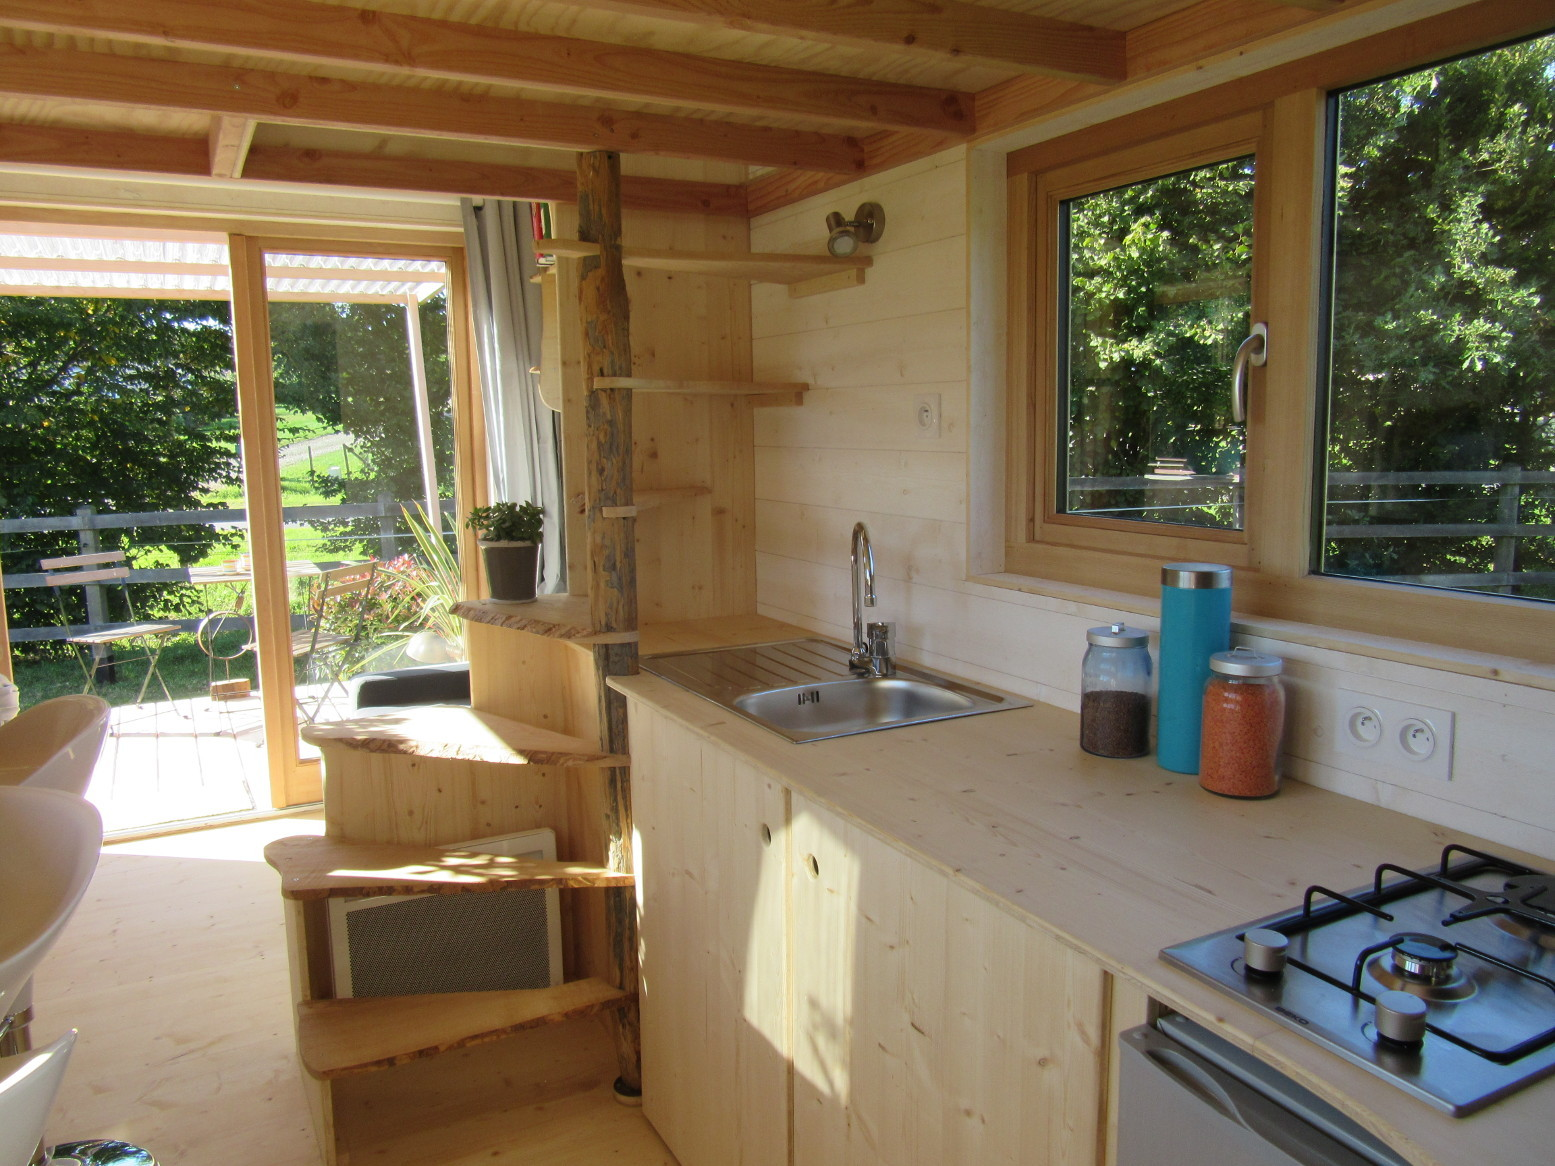 Harvard Designed Tiny Homes: Tiny House Builder In France